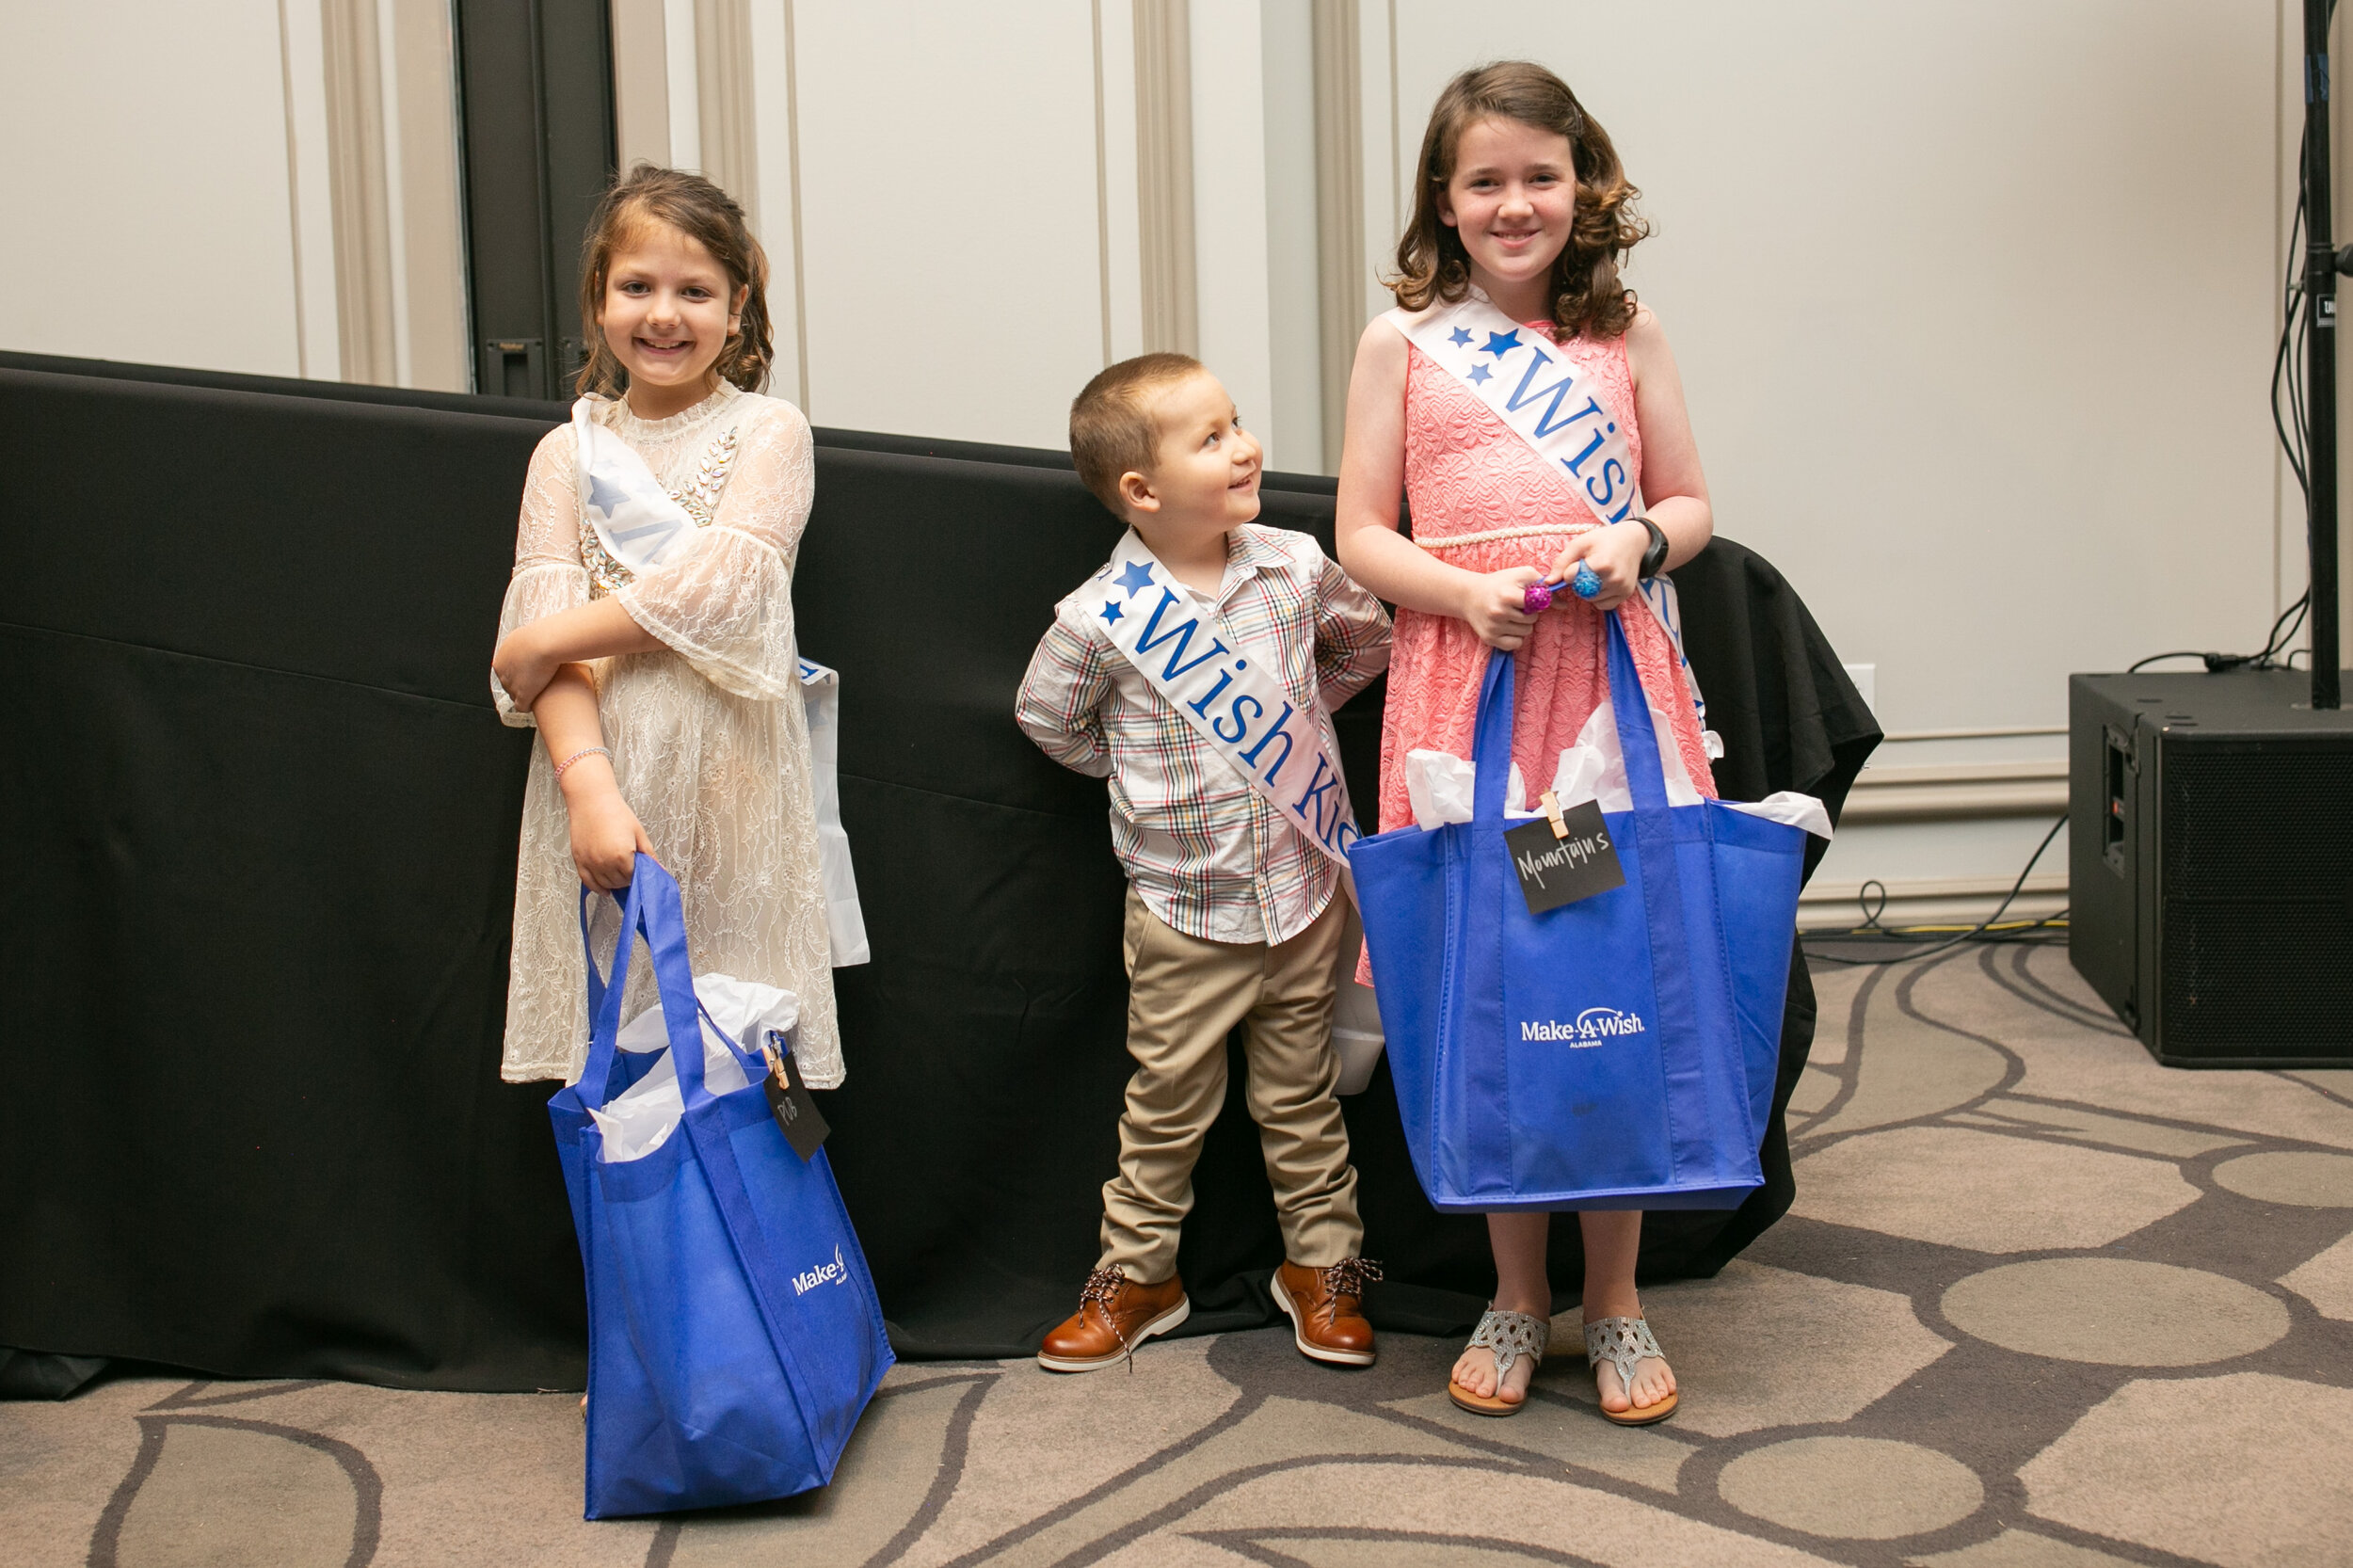 "Wish Ambassadors - At Wish Night, you will get the chance to meet several wish kids and hear their unforgettable stories. You will learn how each wish continues to provide hope, strength and joy to them in unique and unexpected ways! Keep your eyes peeled for the ""Wish Kid"" sashes."